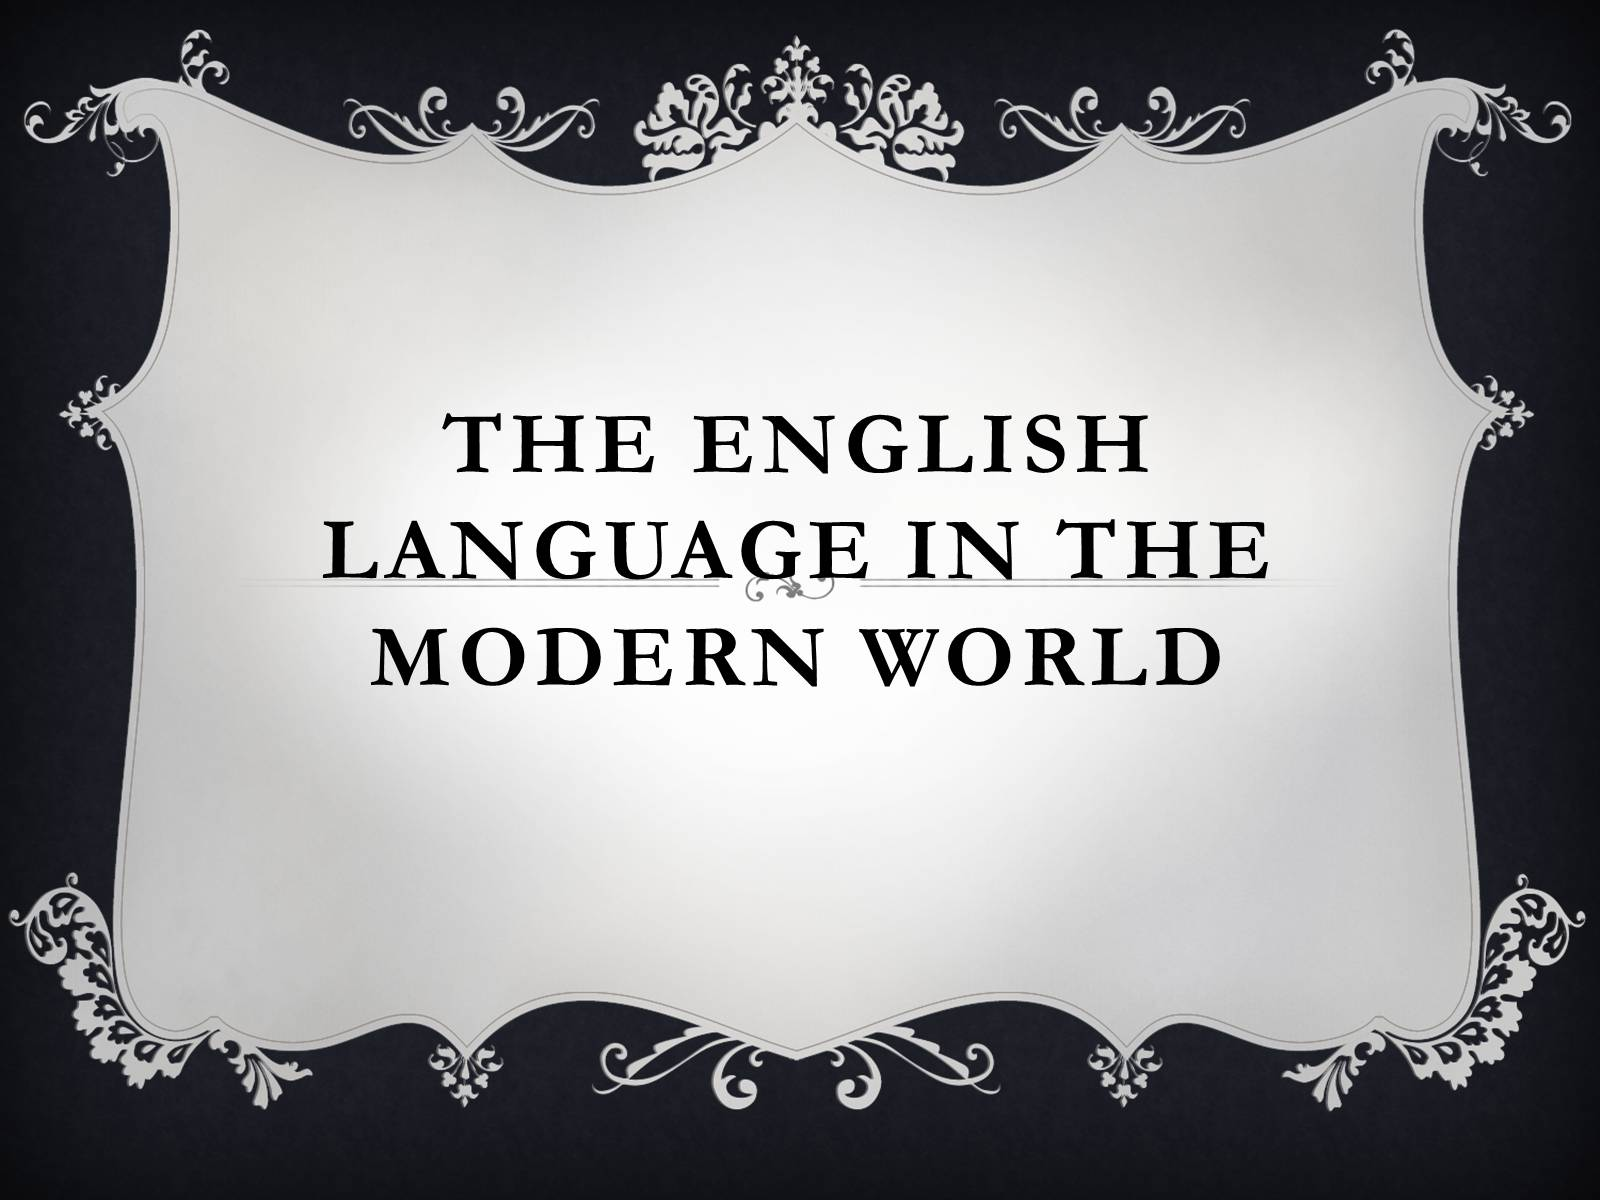 Презентація на тему «The english language in the modern world»